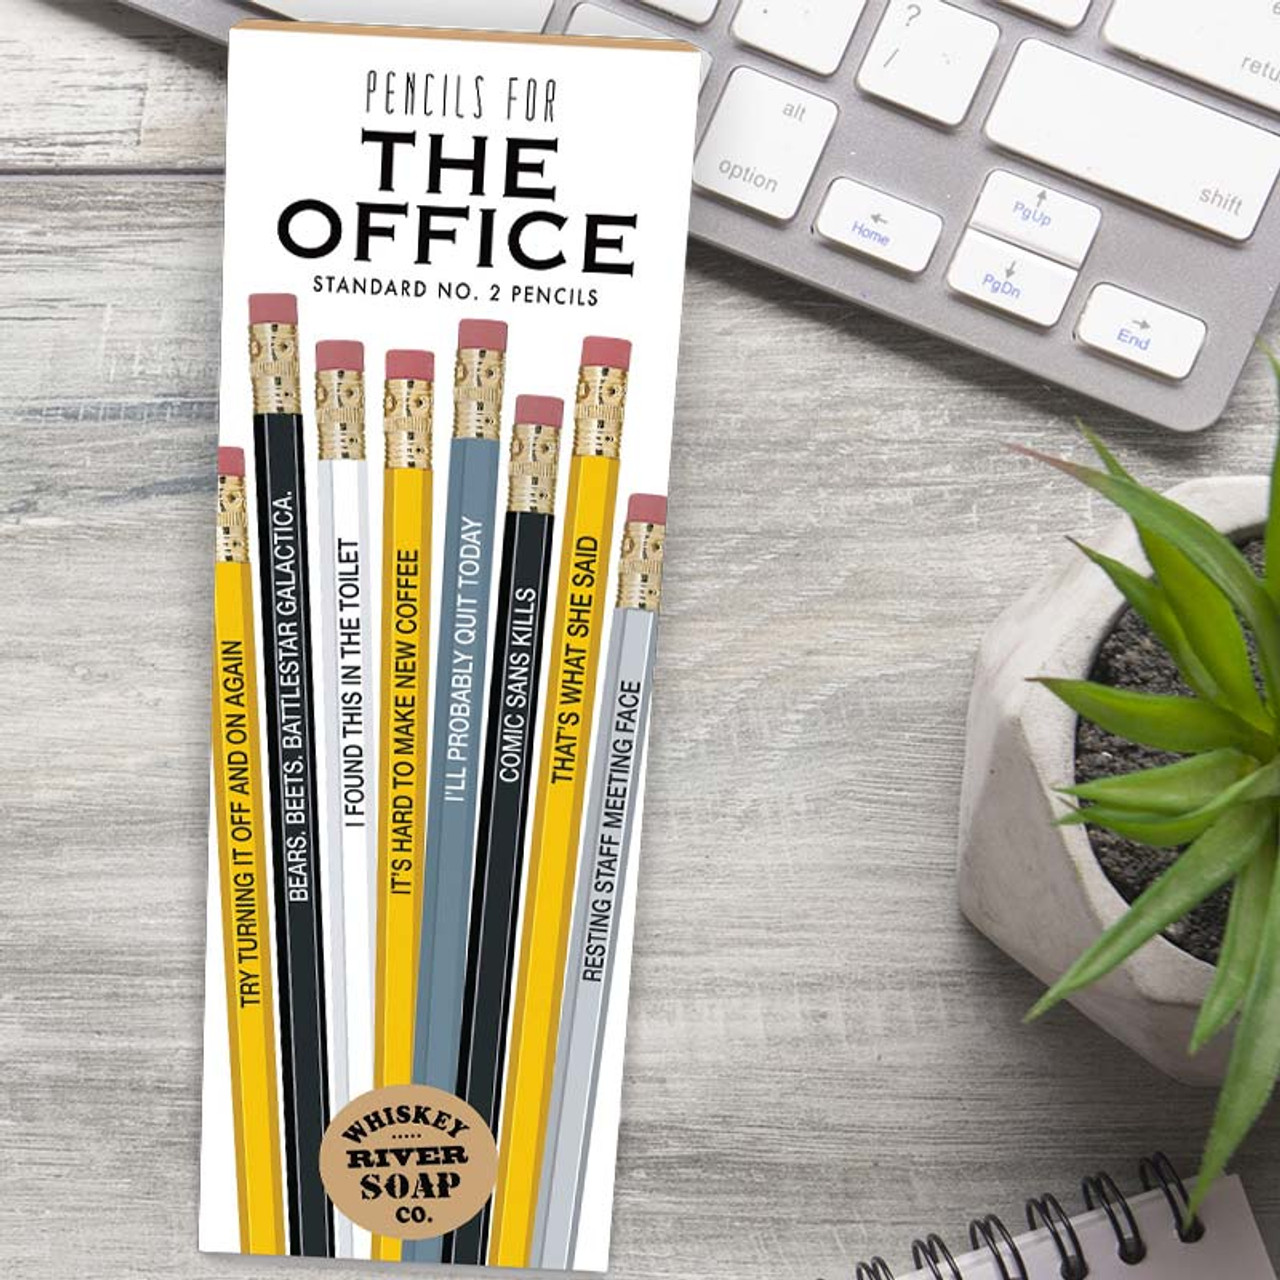 Pencils for the Office by Whiskey River